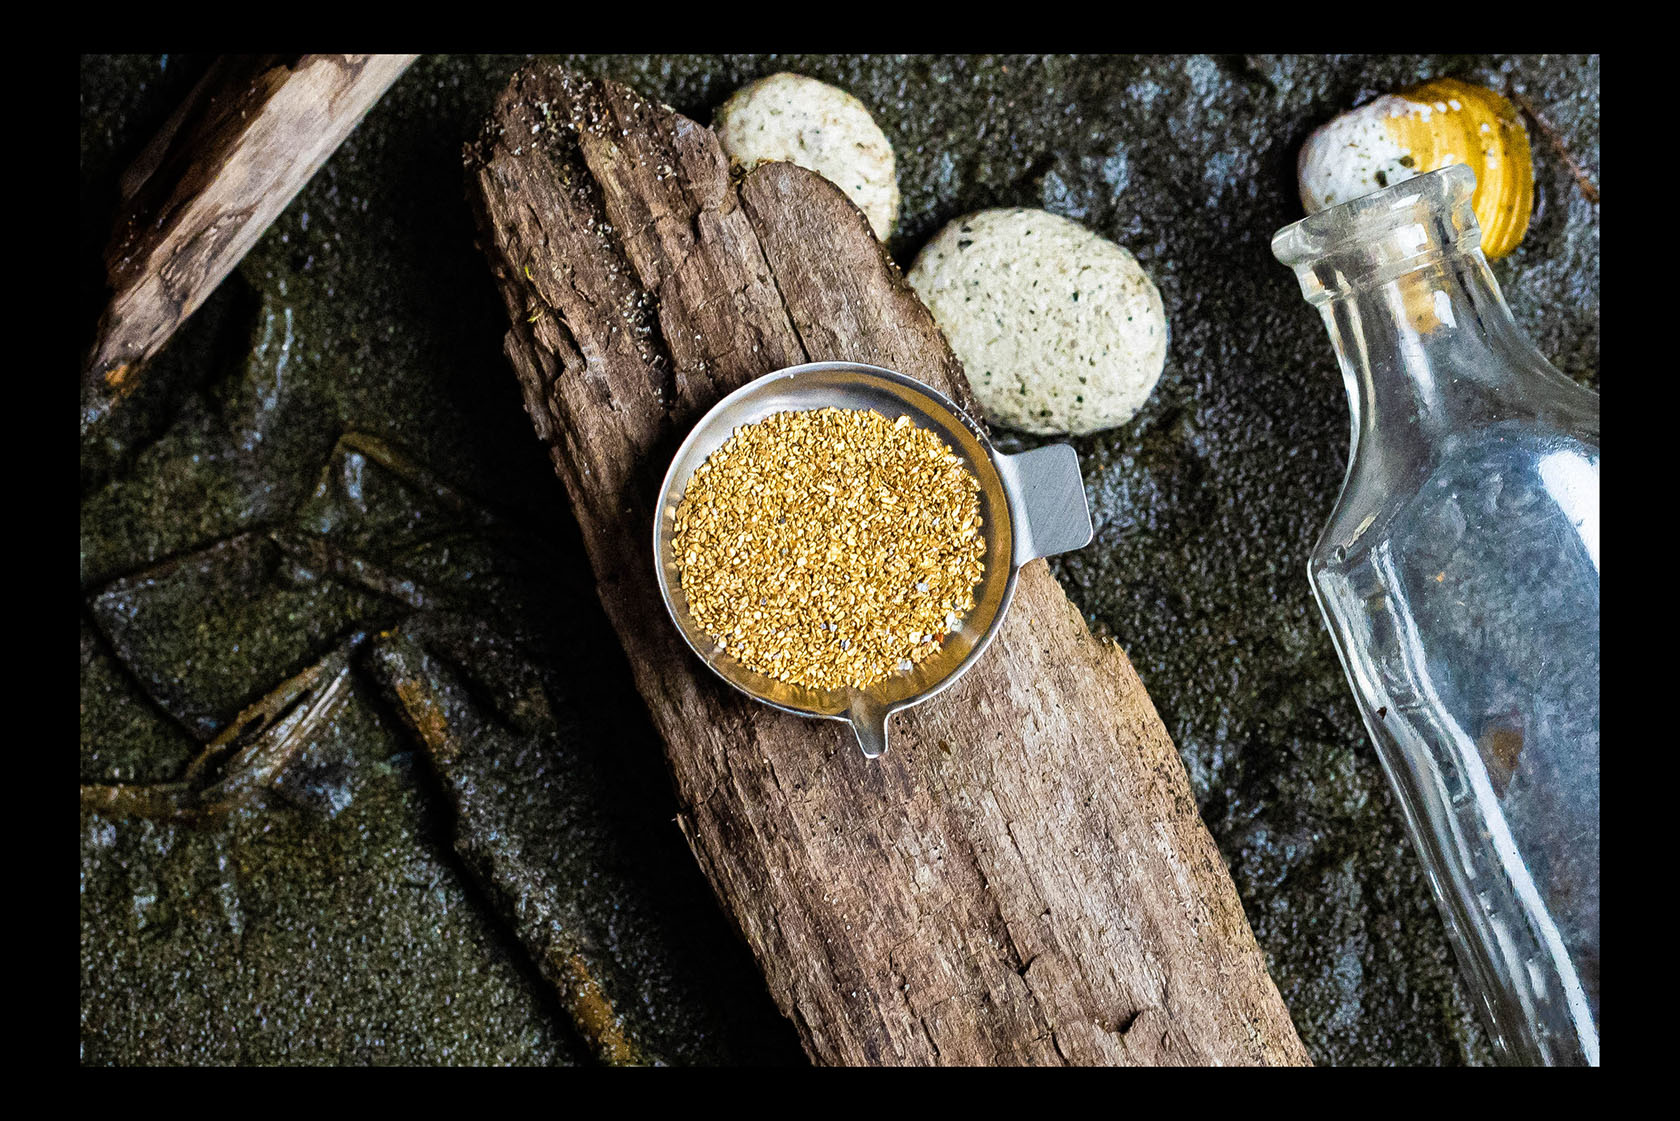 Pacific Northwest Coastal Flour Gold - 3 Gram Vial of Gold